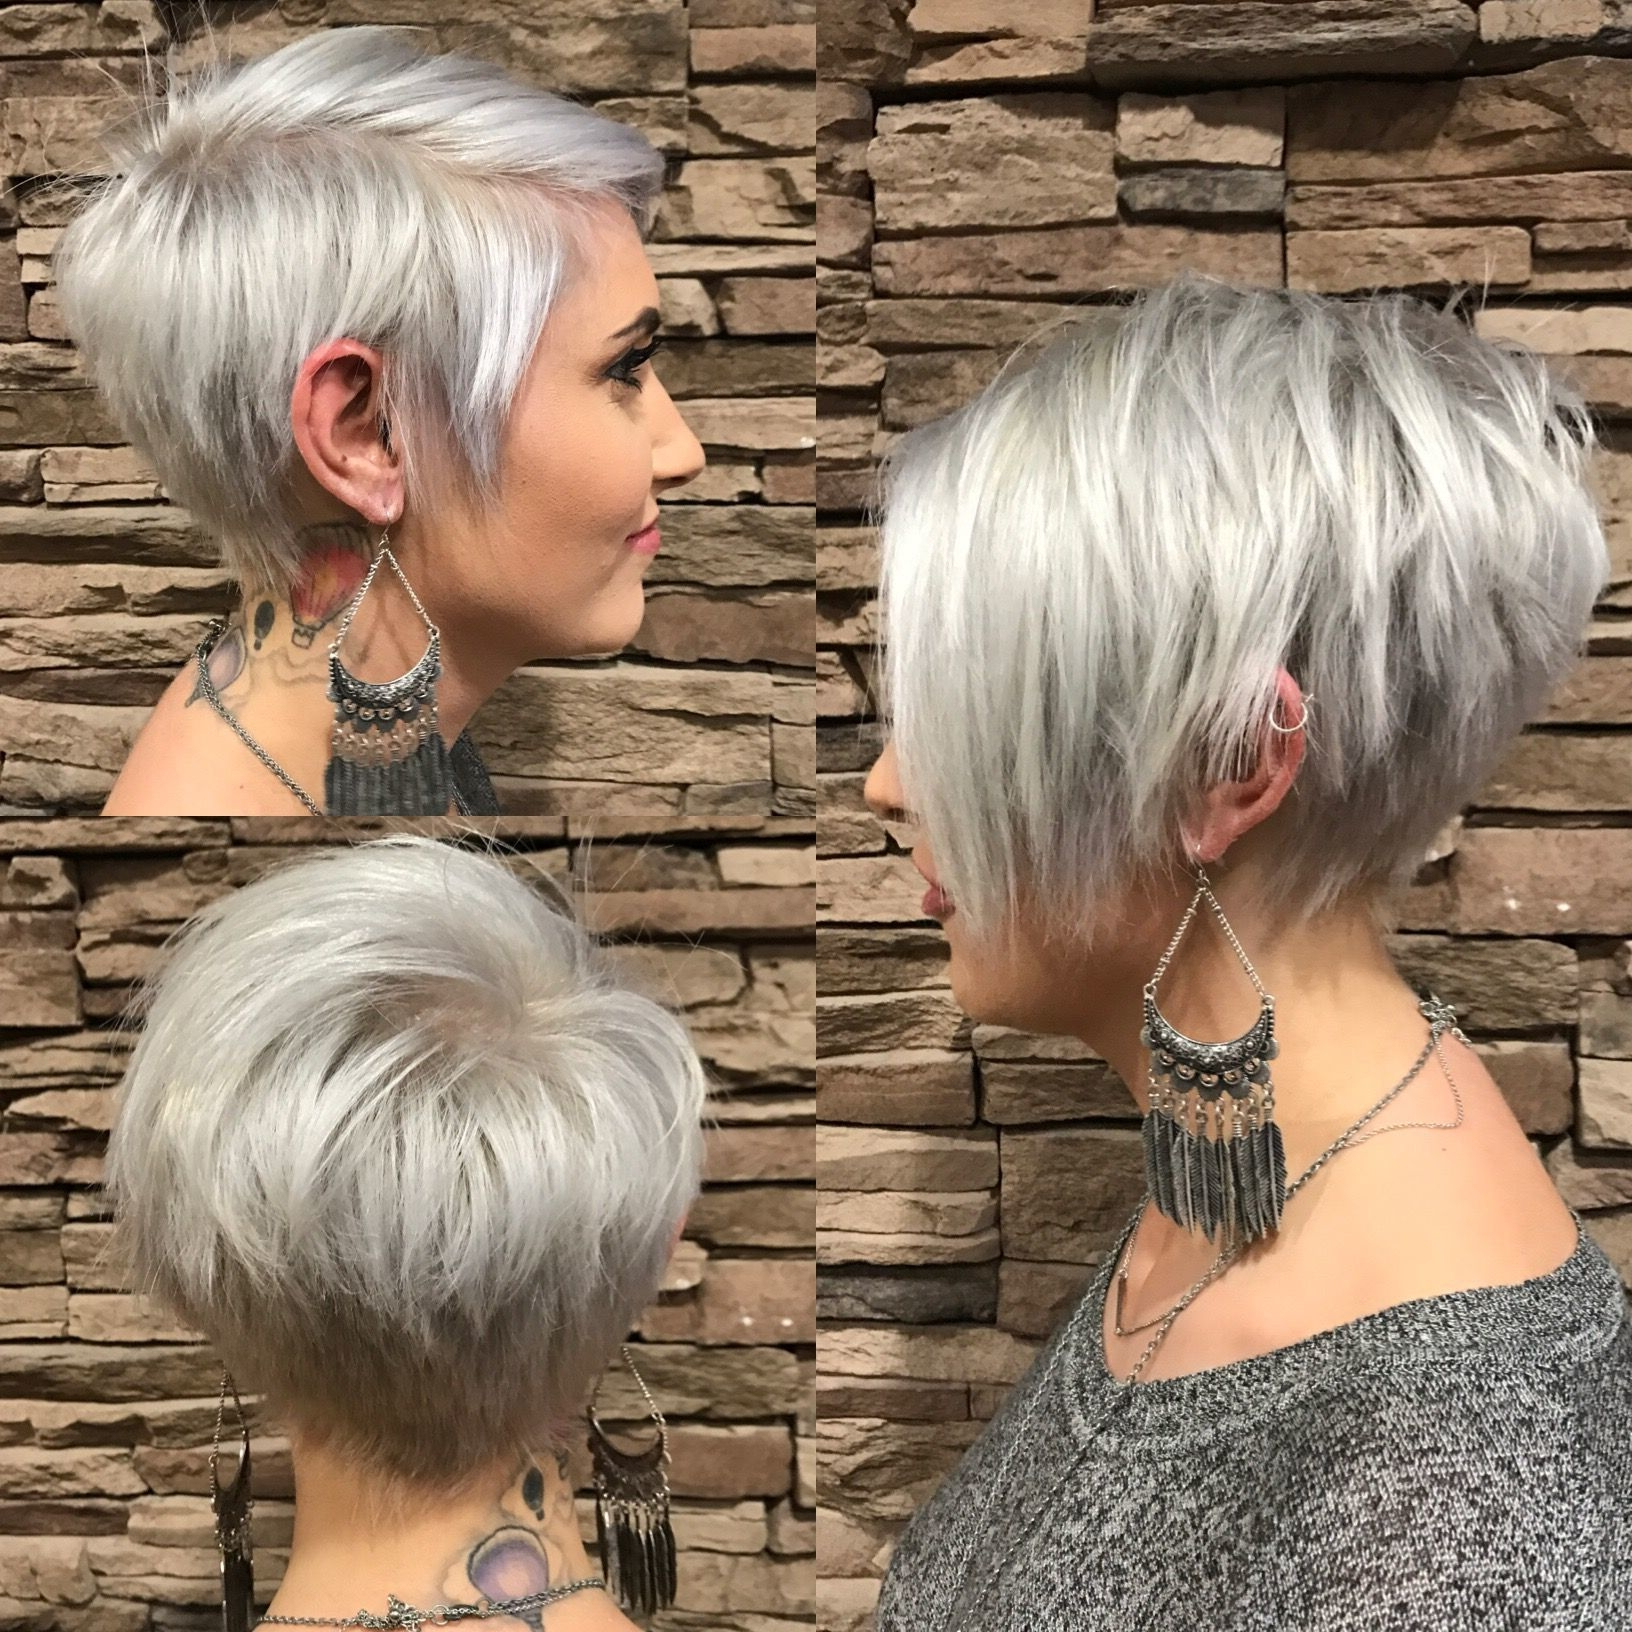 Asymmetric Haircuts For Thick Hair – Short And Cuts Hairstyles Regarding Asymmetric Short Haircuts (View 9 of 25)